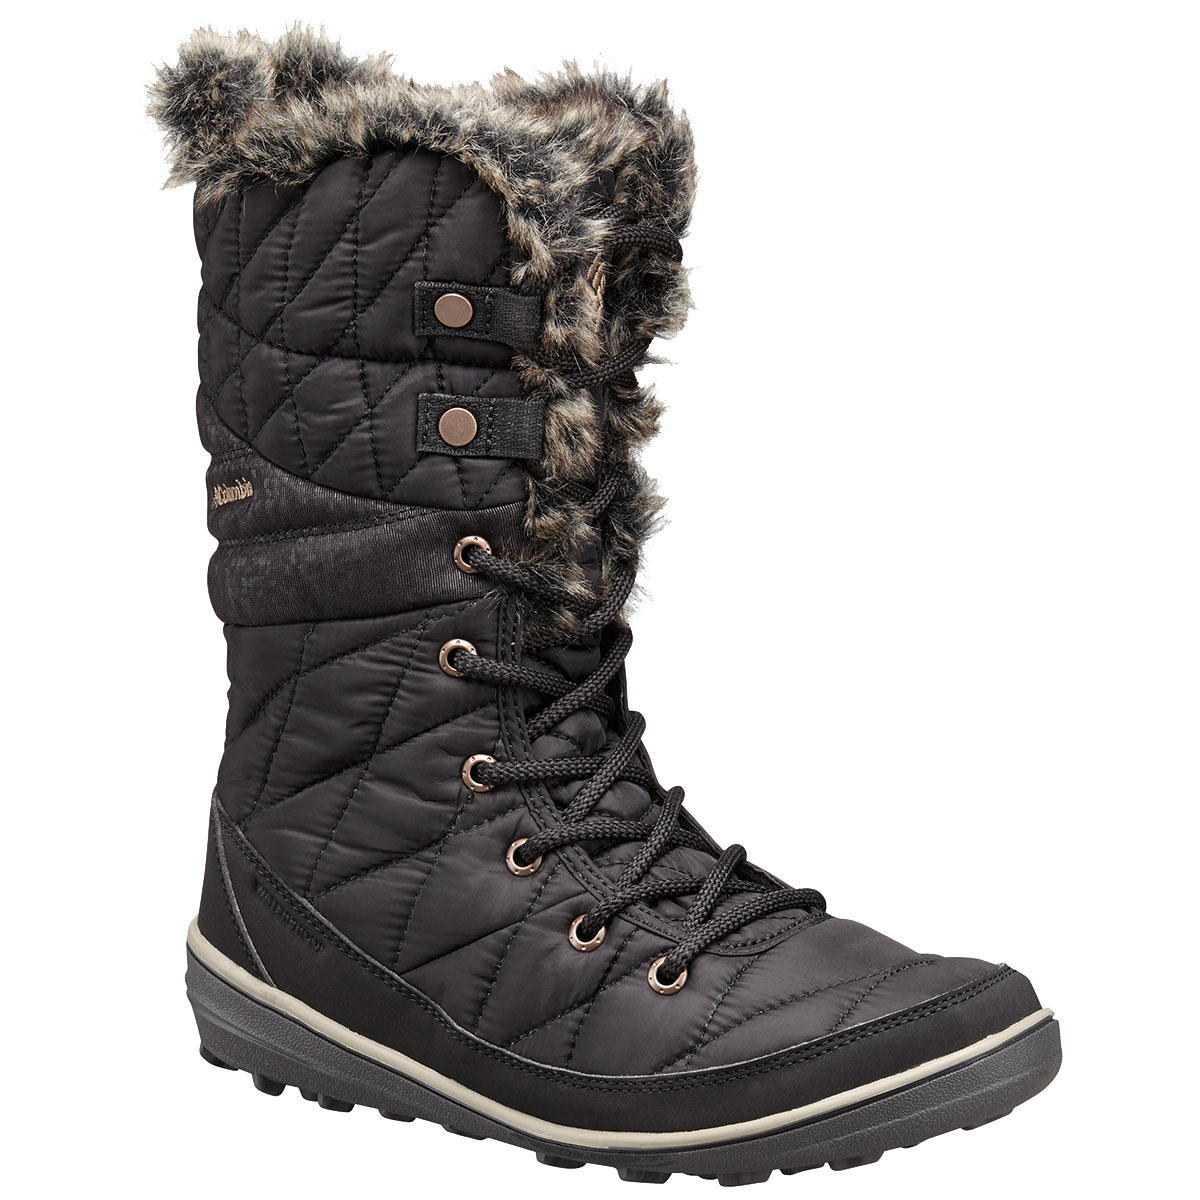 Columbia Women's Heavenly Omni-Heat Lace-Up Insulated Waterproof Storm Boots - Black, 10